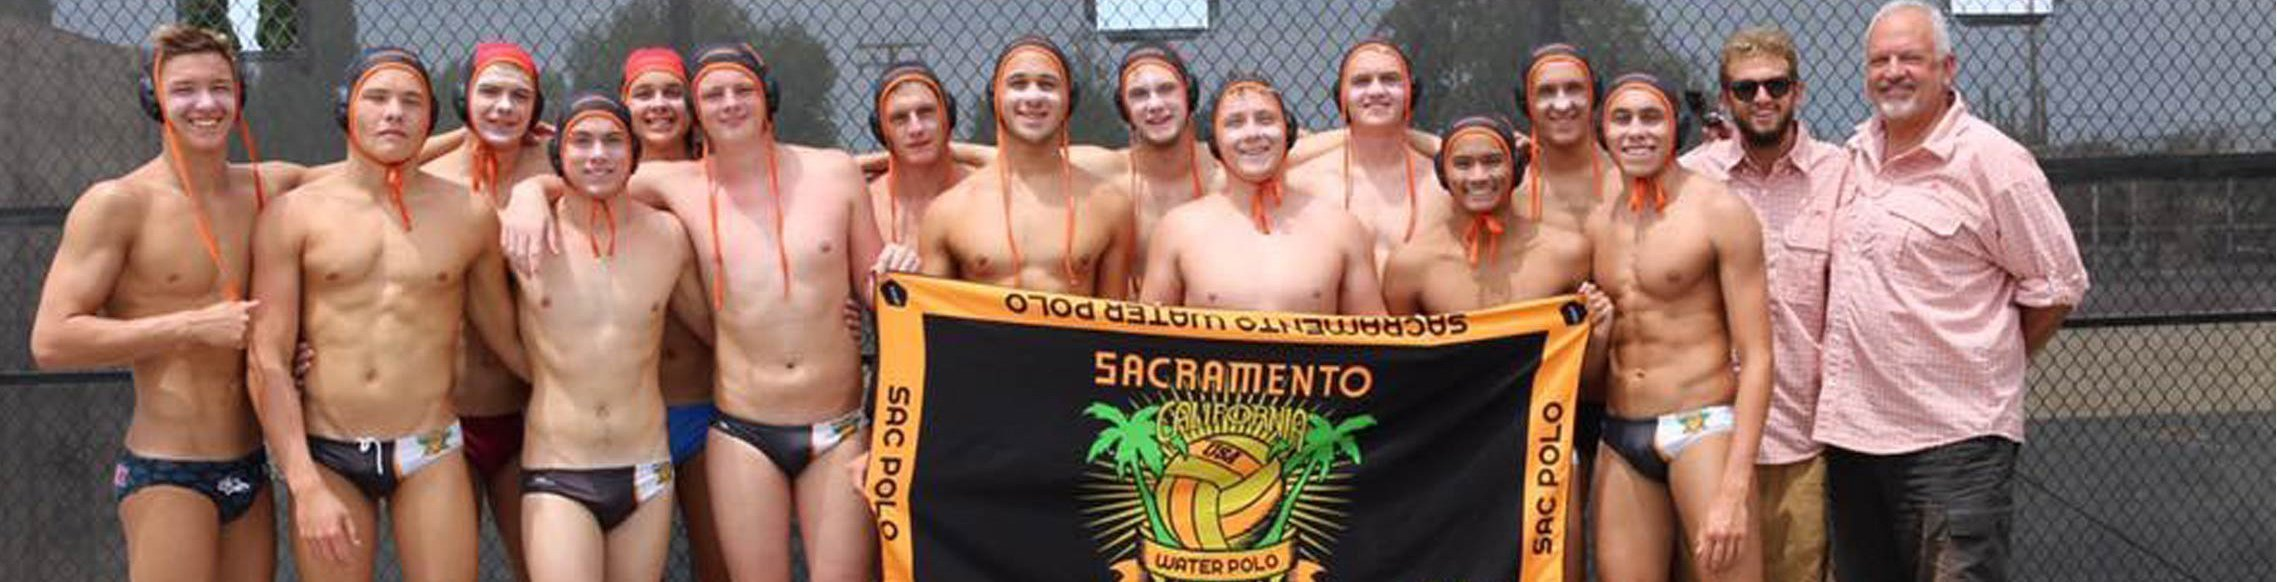 Sacramento Water Polo Club